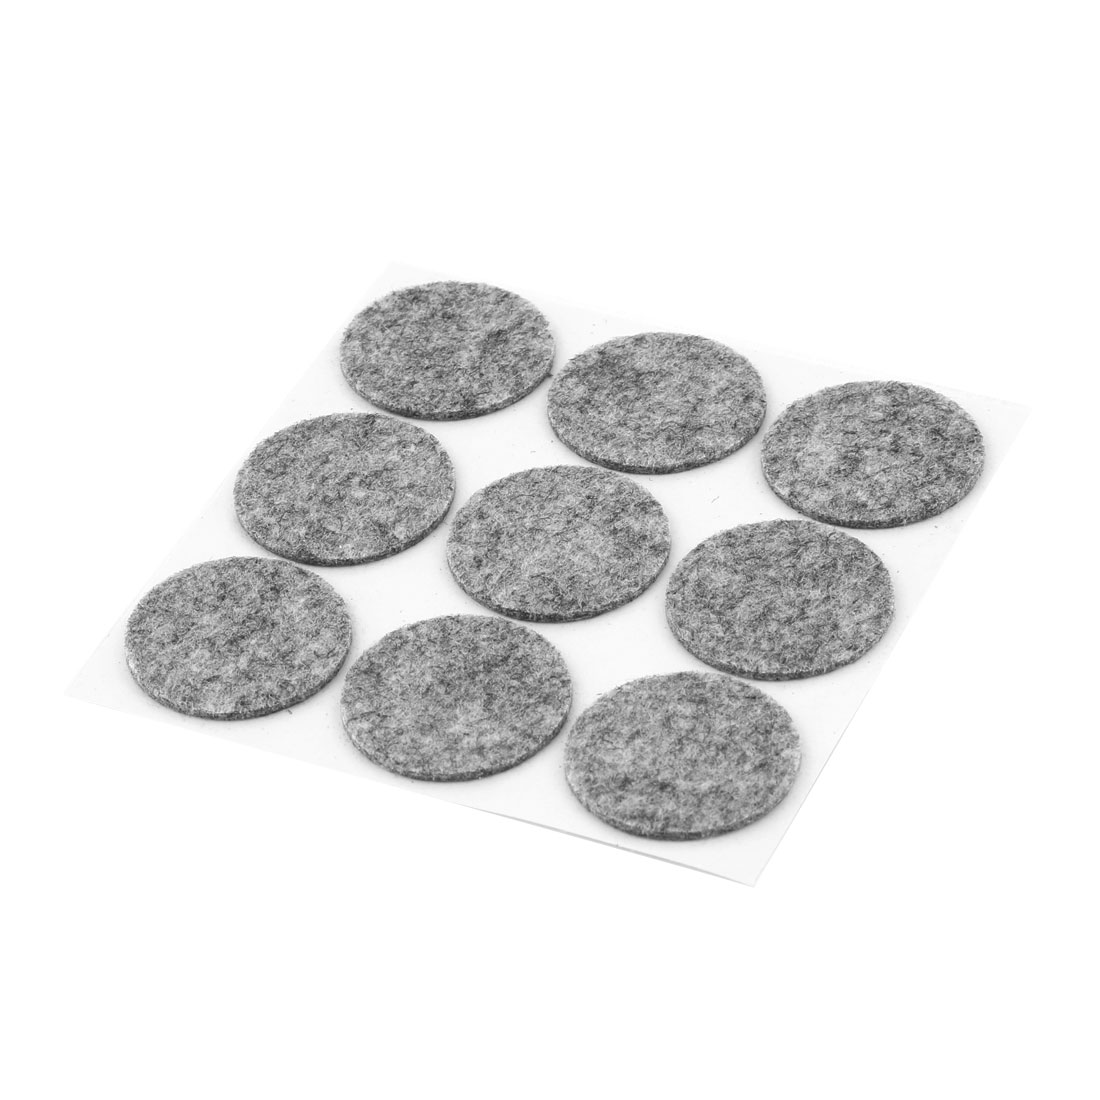 Home Round Shaped Table Chair Feet Protection Furniture Felt Pad Gray 9 Pcs